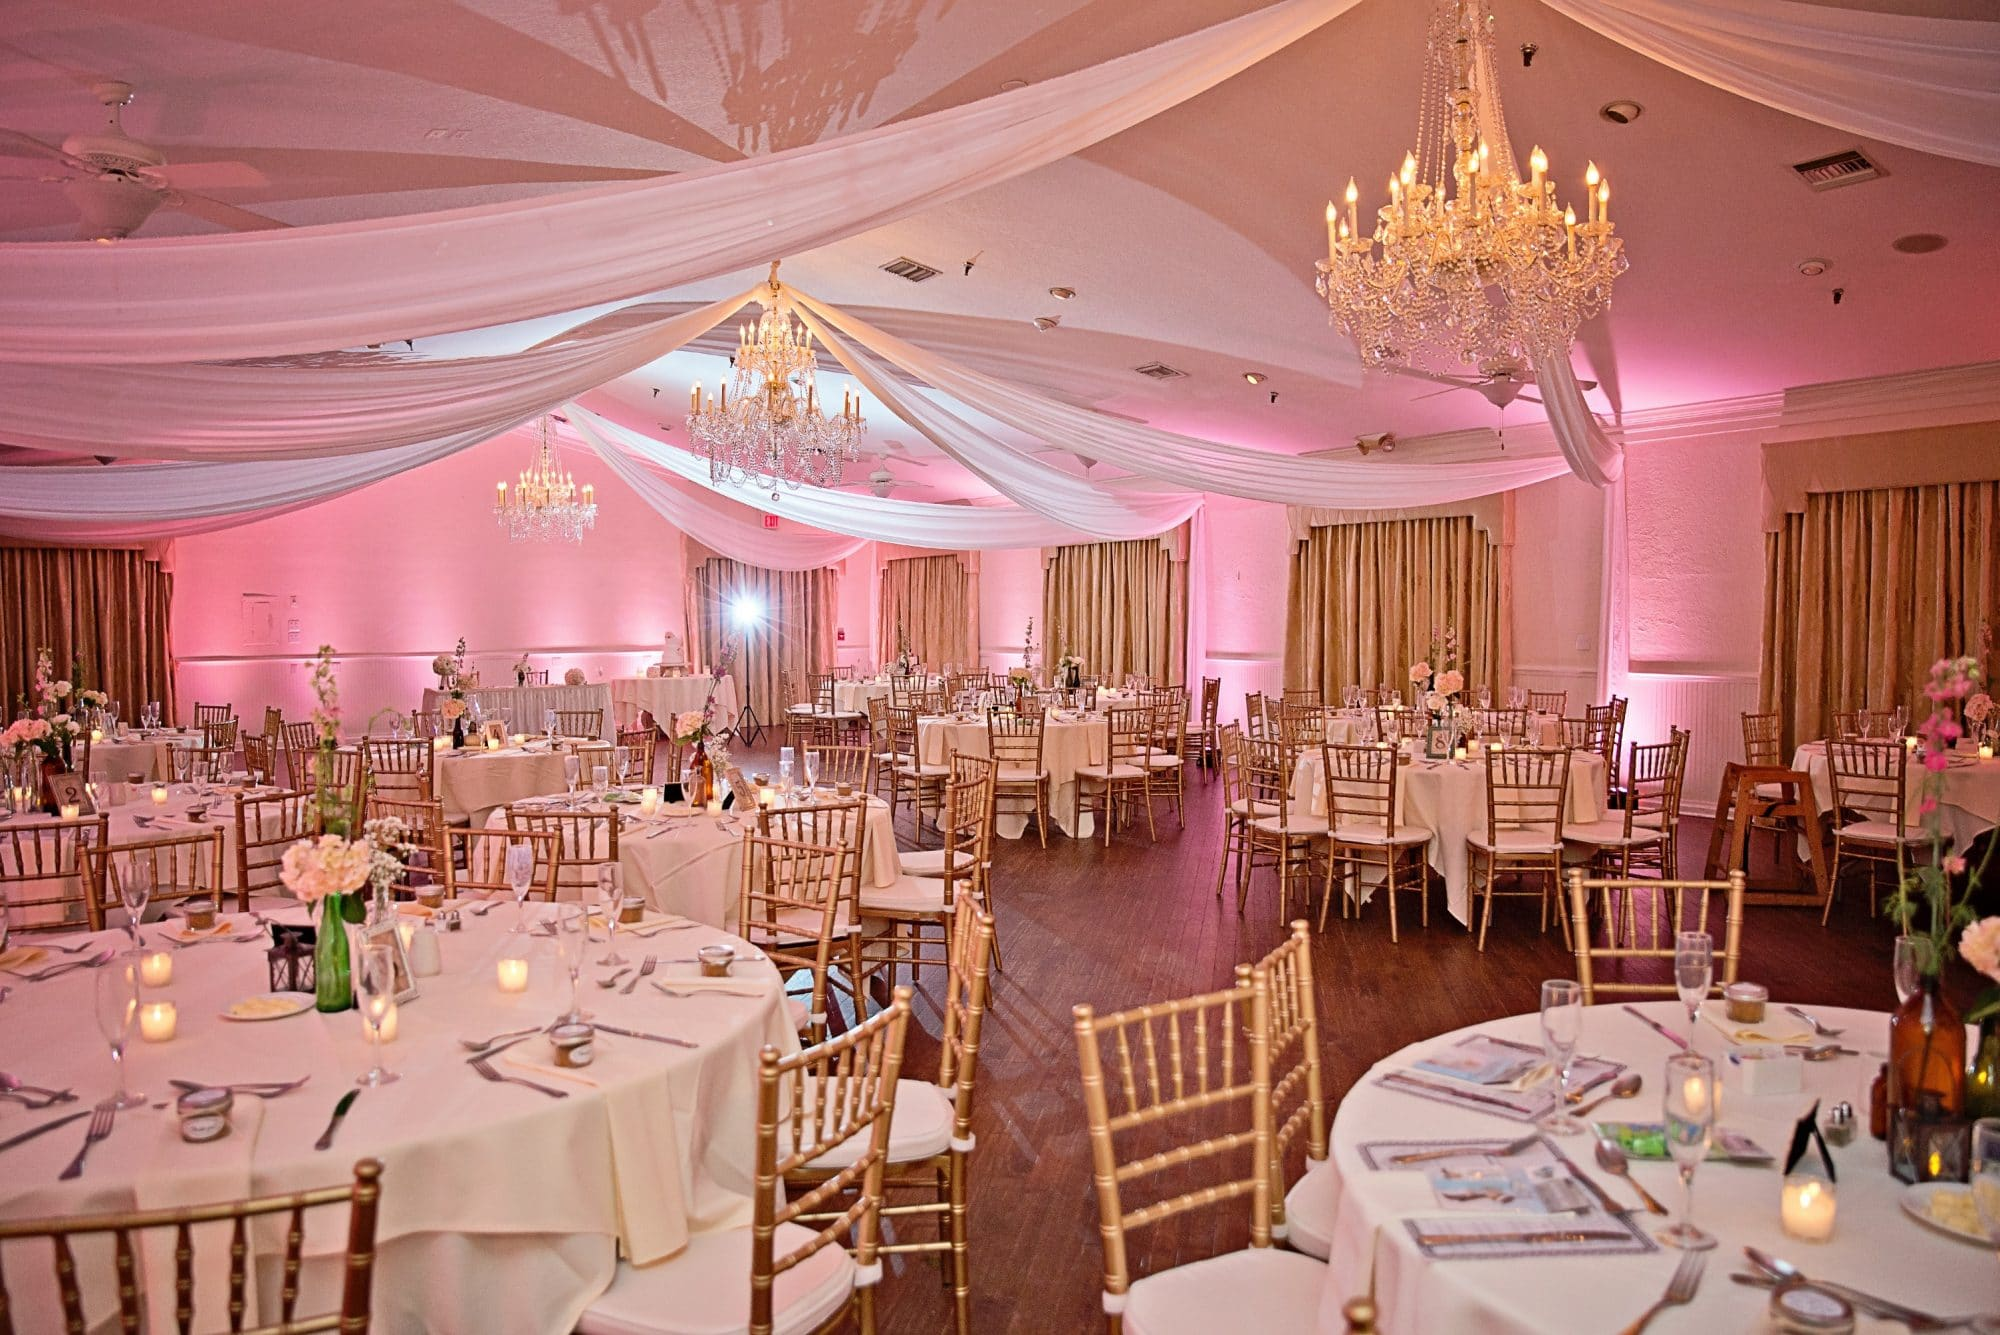 Beautiful indoor wedding reception venue with pink uplighting and white drapery on ceiling.